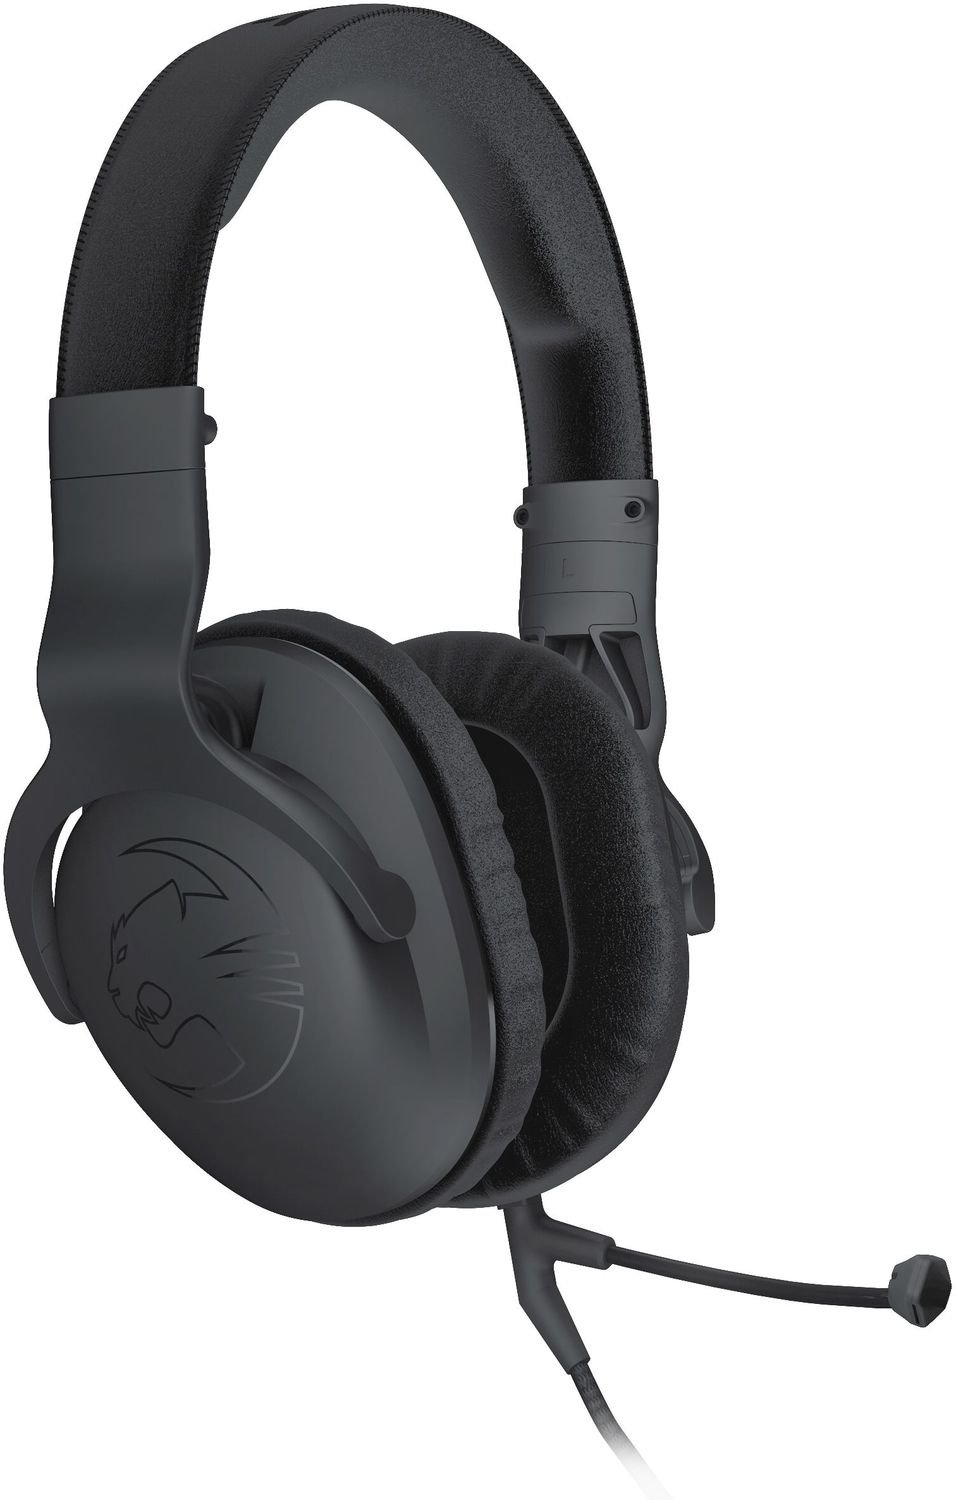 ROCCAT CROSS - Multi-Platform Over-Ear Stereo Gaming Headset by ROCCAT